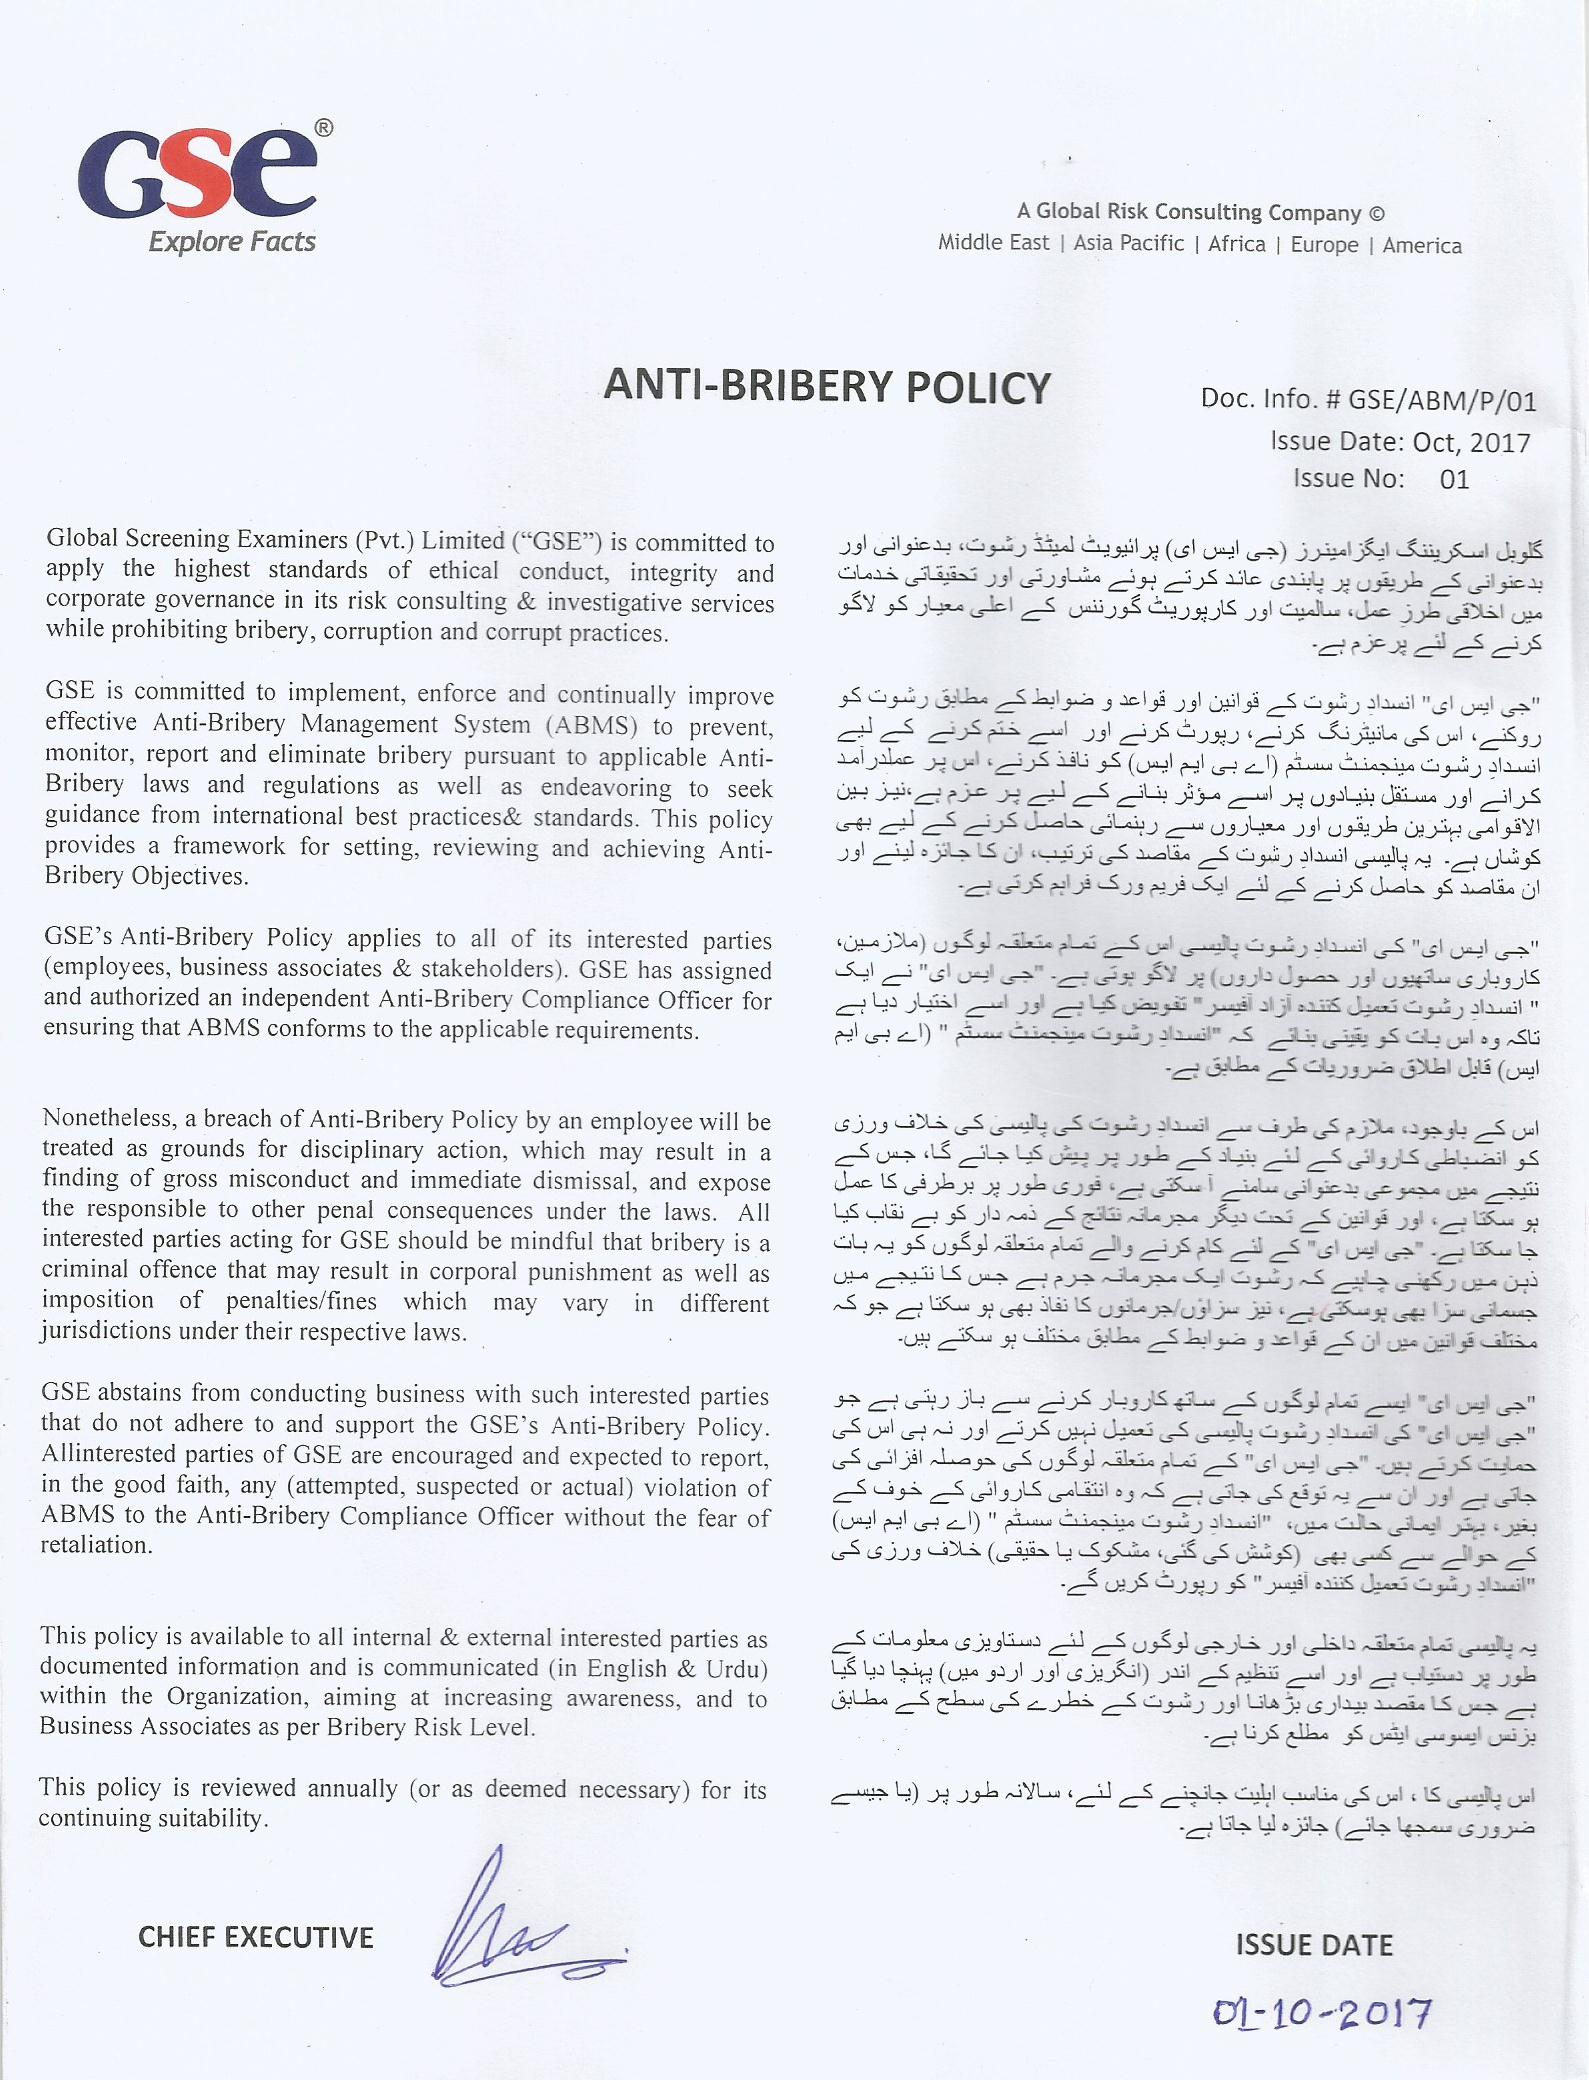 ABMS Policy